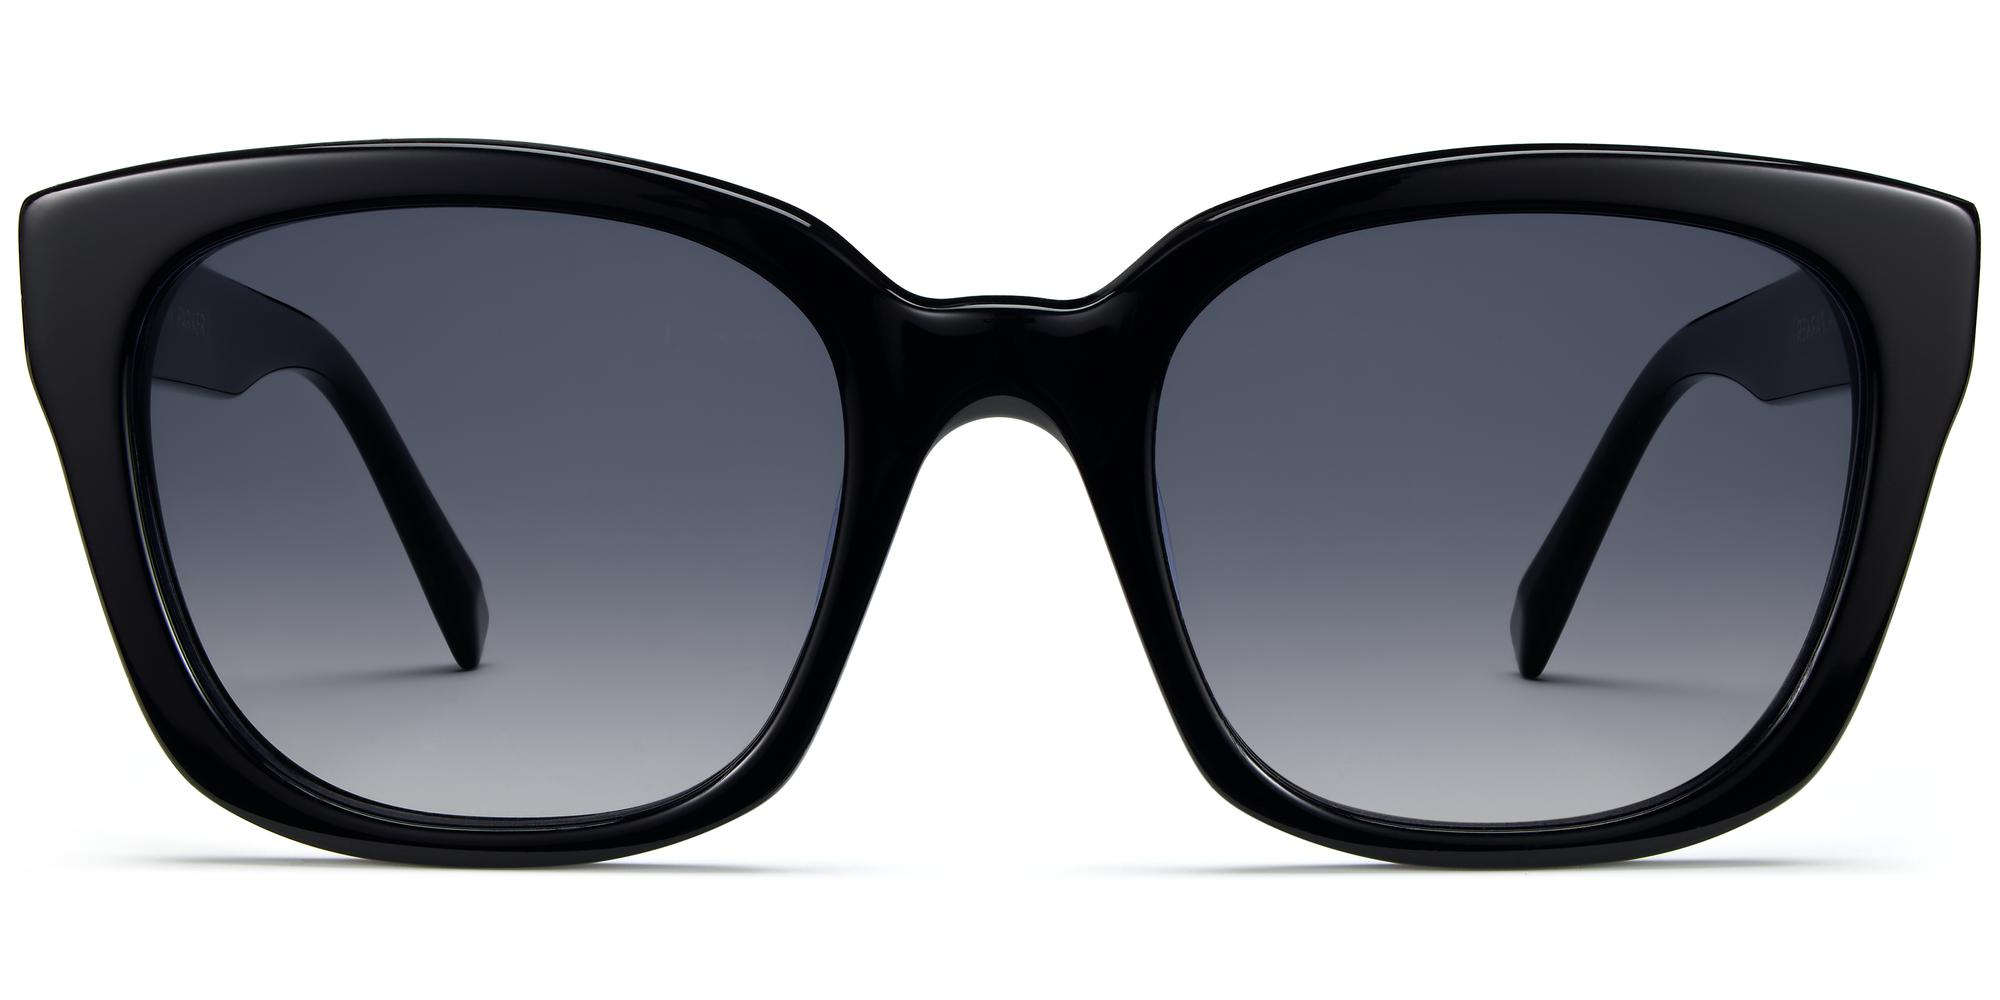 Front View Image of Aubrey Sunglasses Collection, by Warby Parker Brand, in Jet Black Color